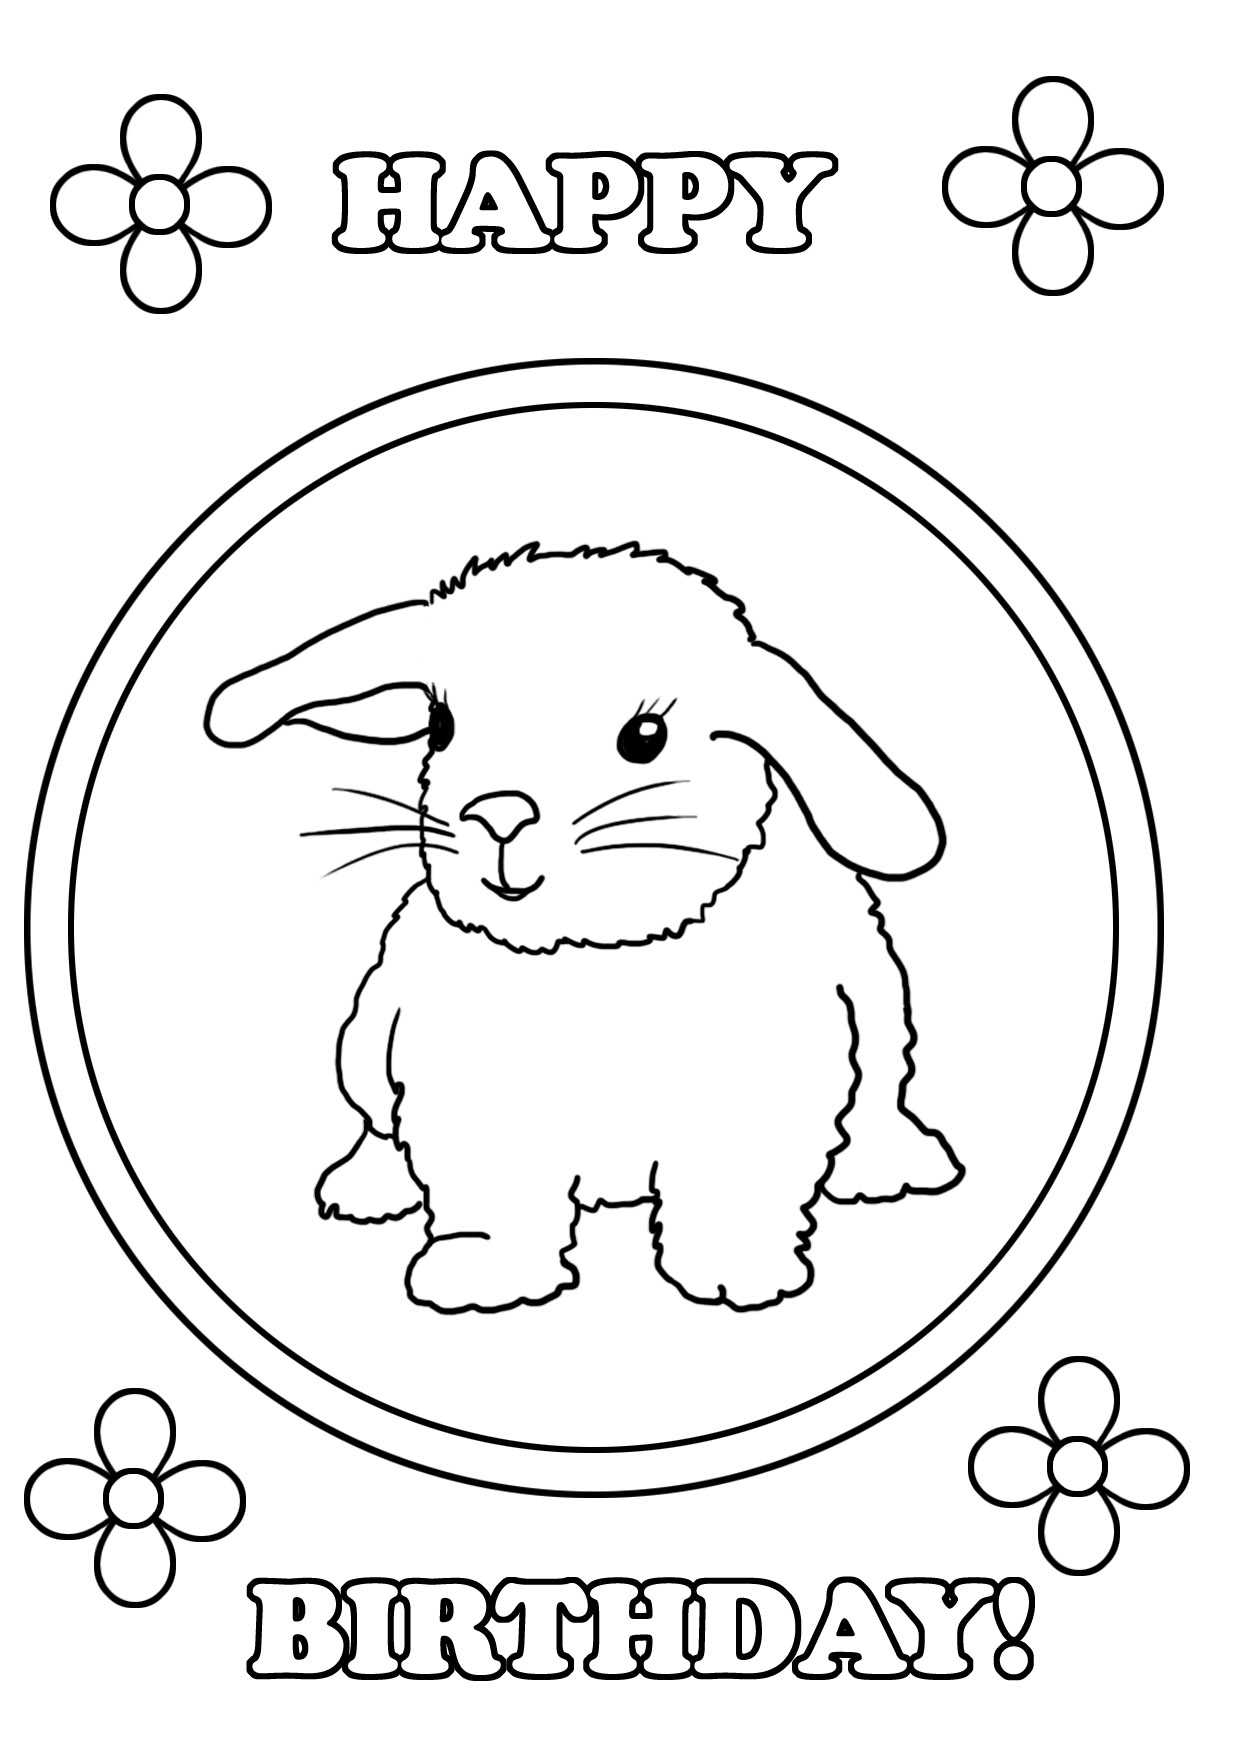 Birthday coloring pages for Birthday coloring page